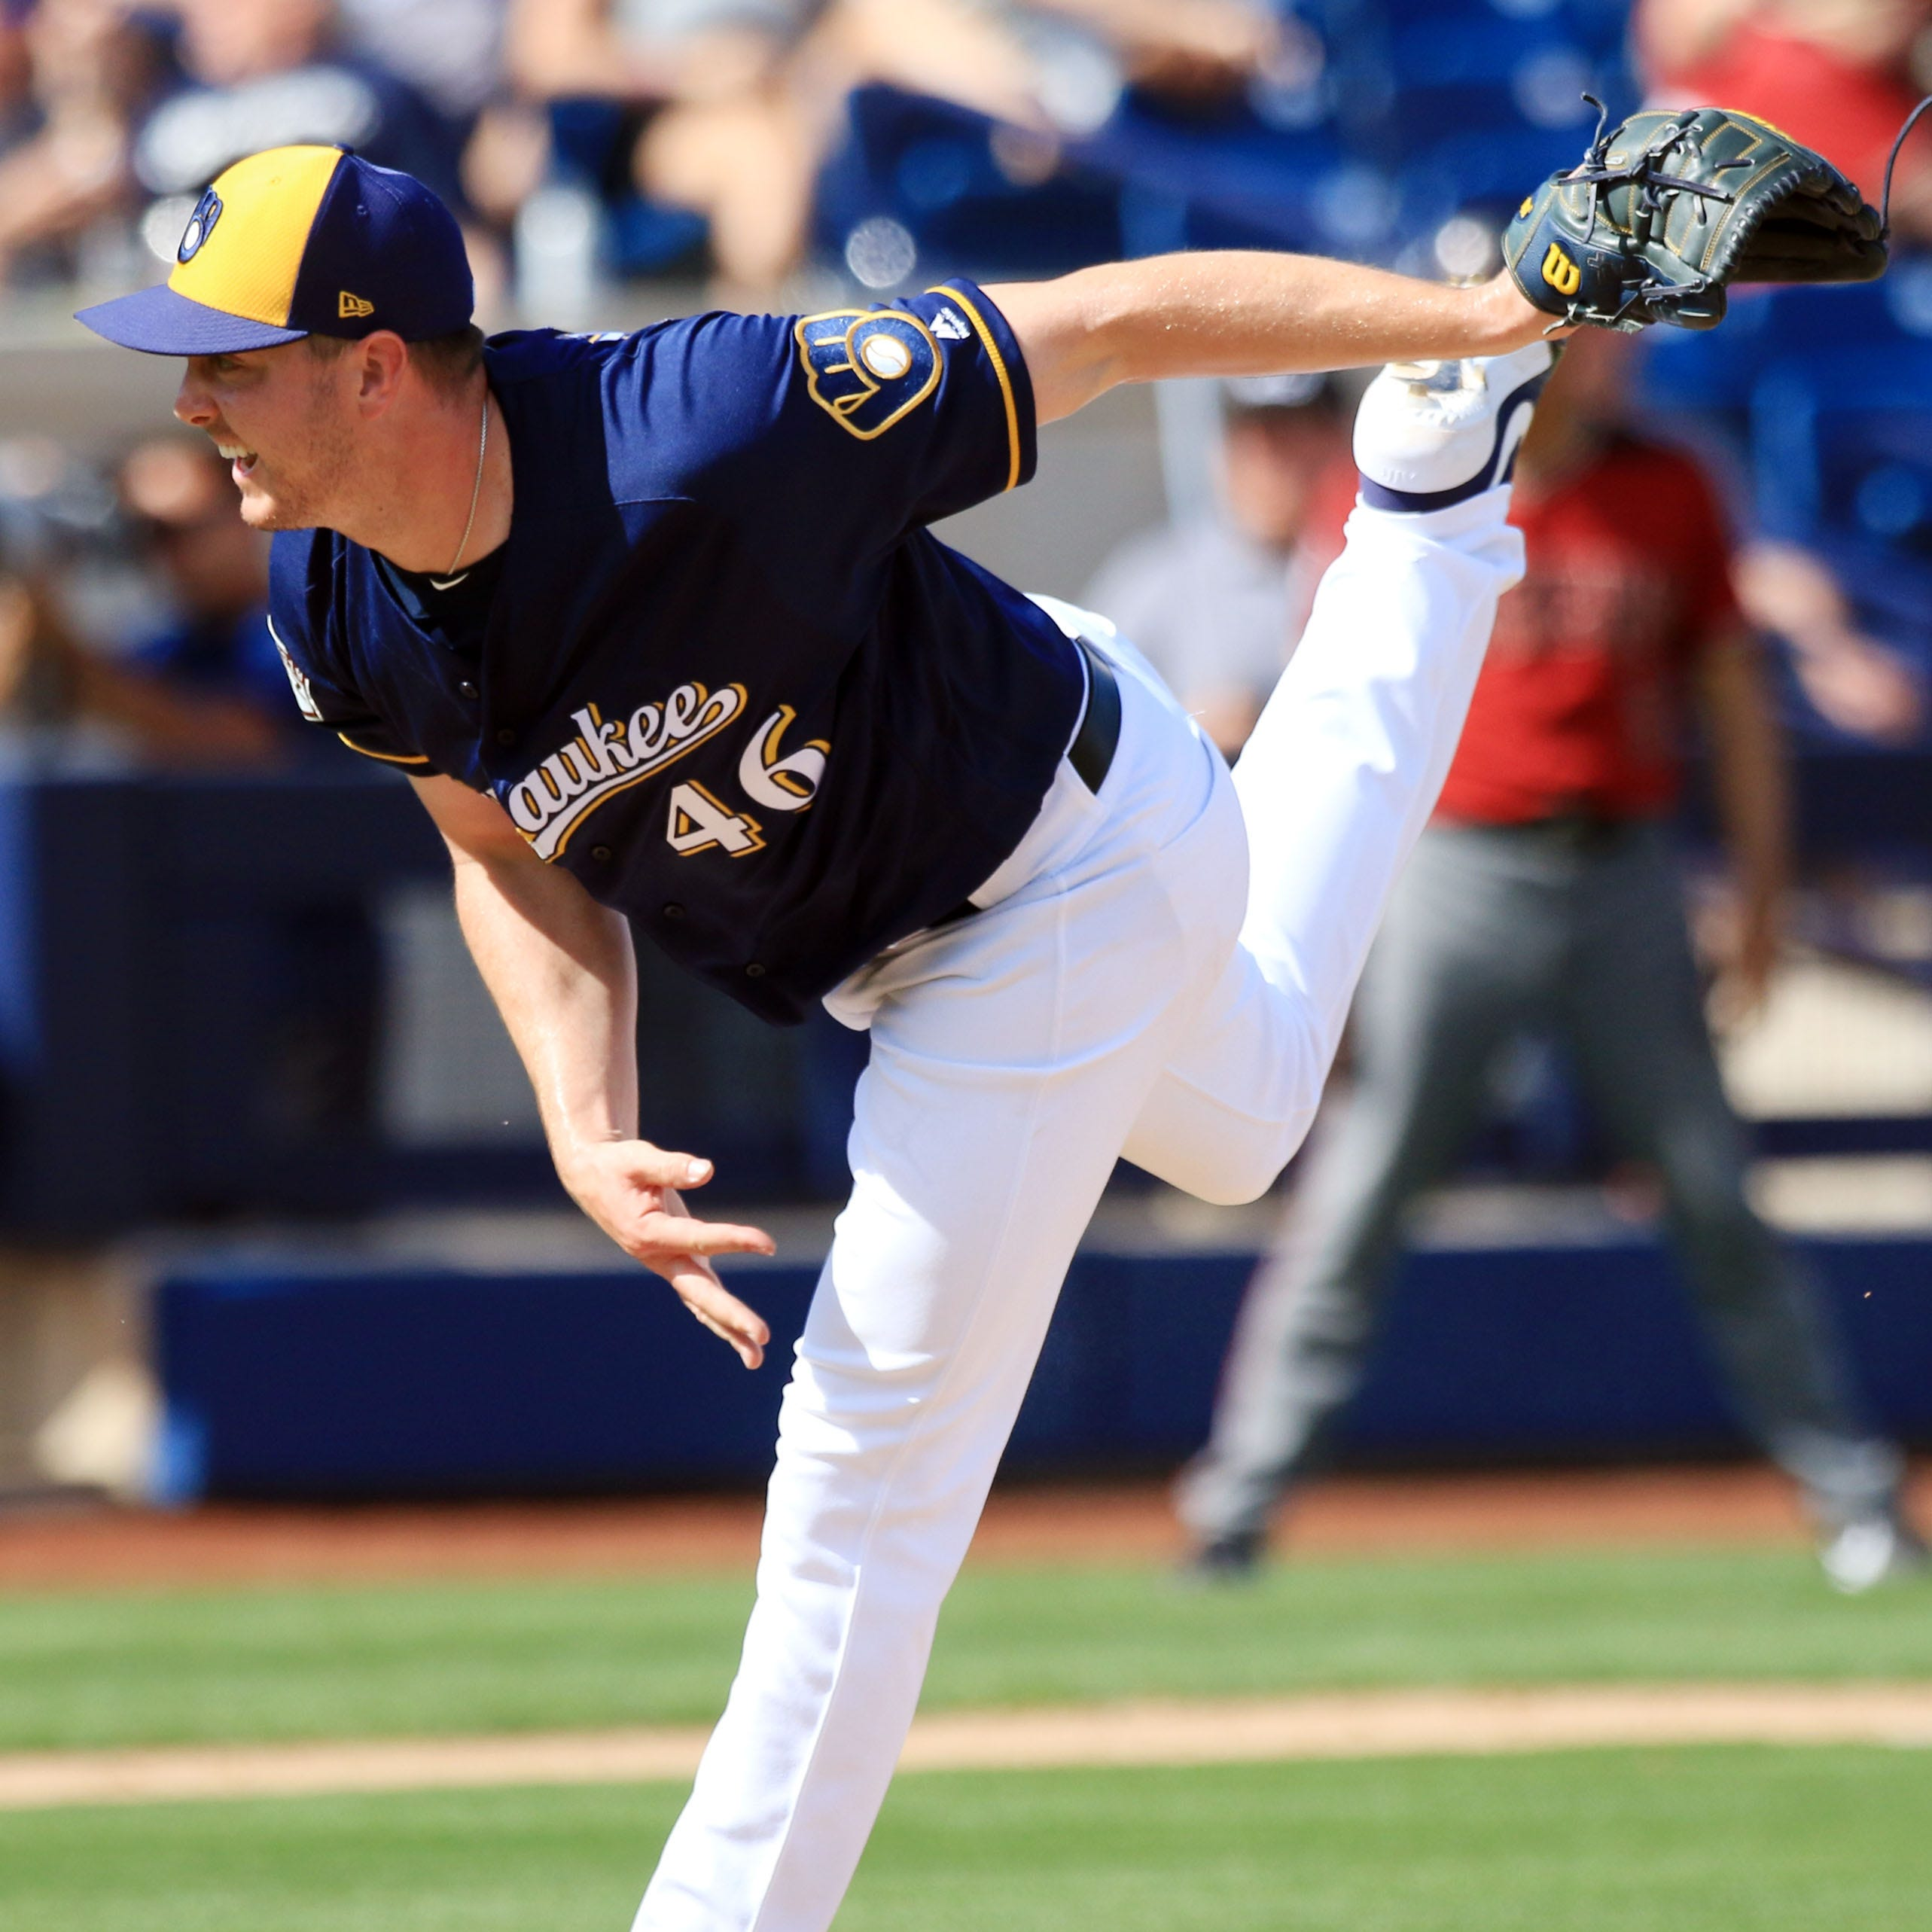 With Jeffress already headed for injured list, Brewers await news on Corey Knebel's elbow